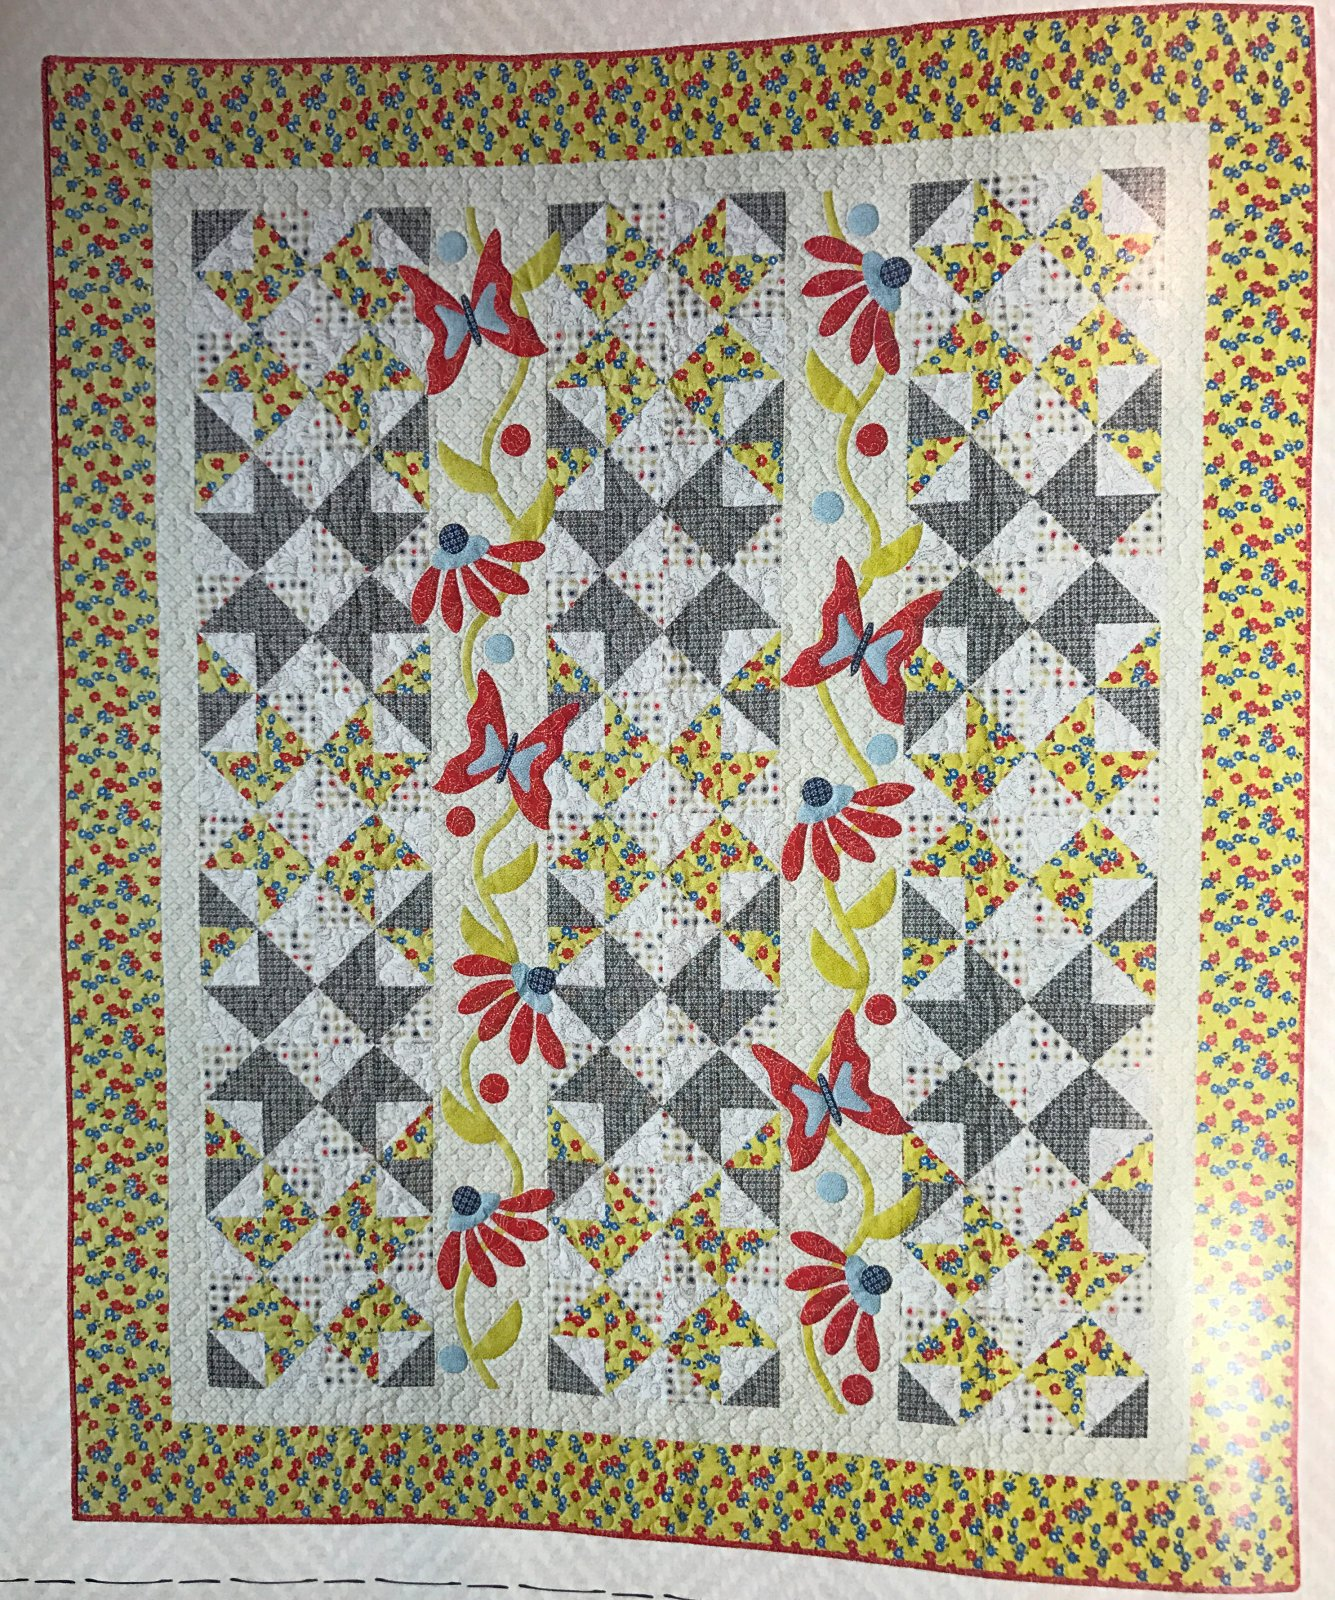 Spring Breeze quilt kit by Pat Sloan